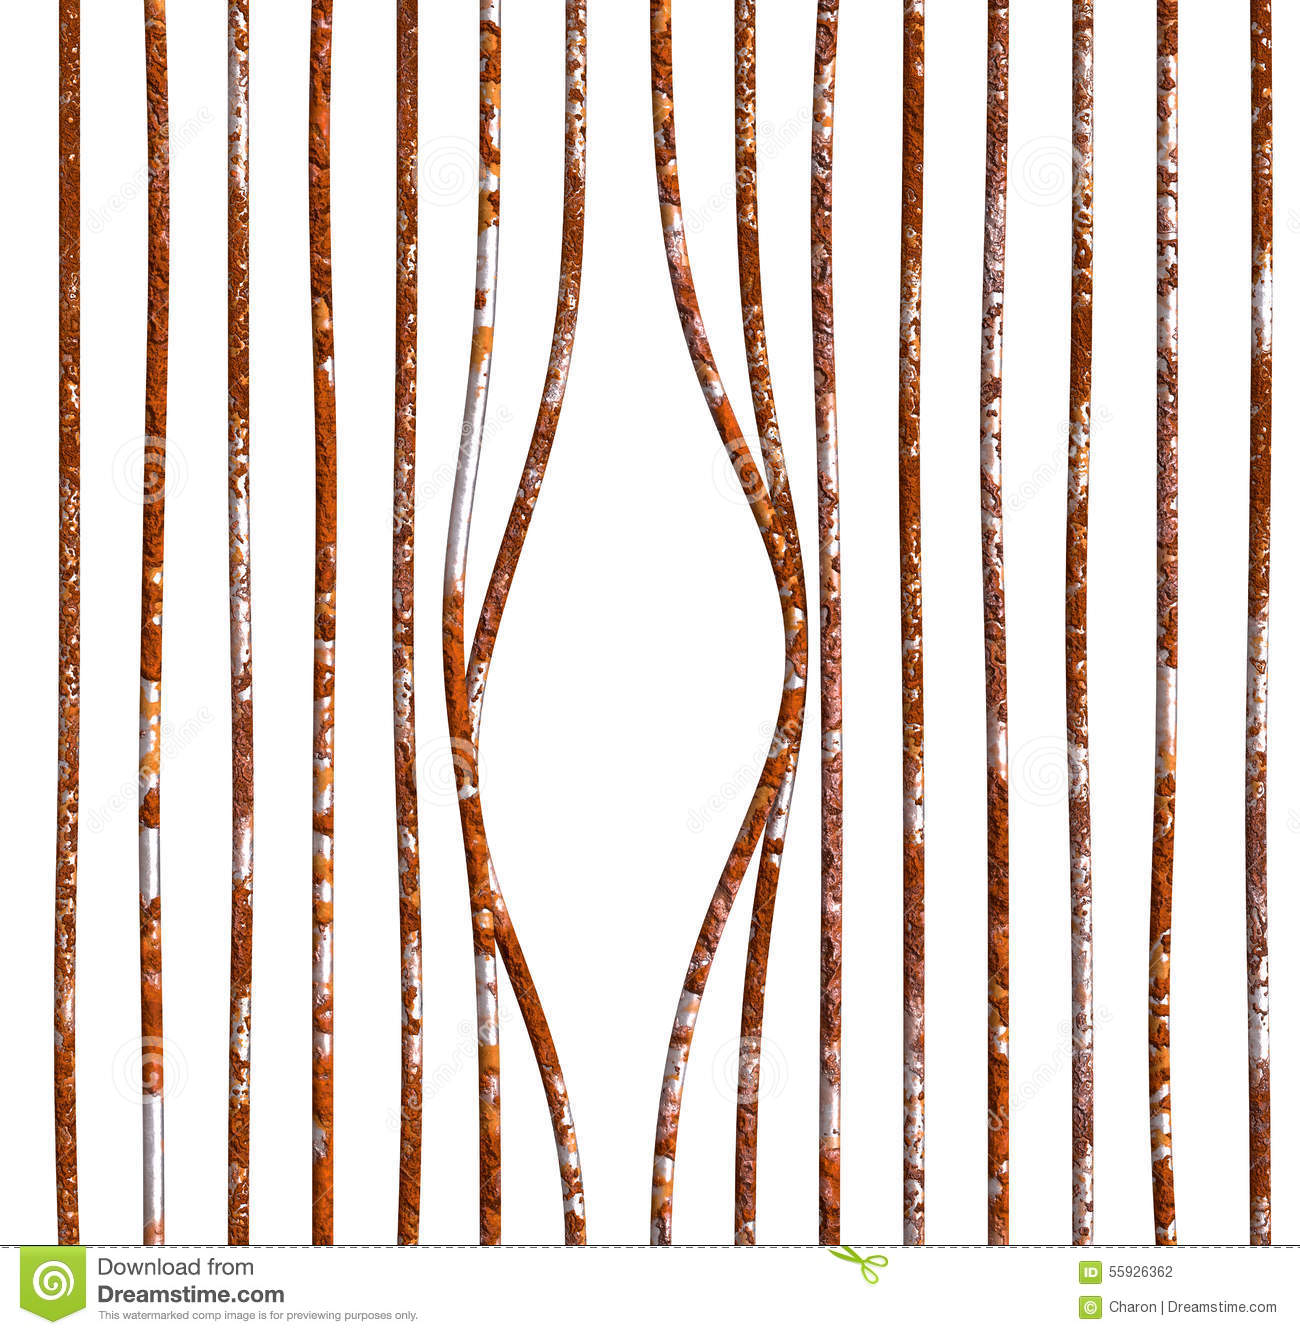 Damaged Rust Bars Empty Prison Stock Photo - Image: 55926362